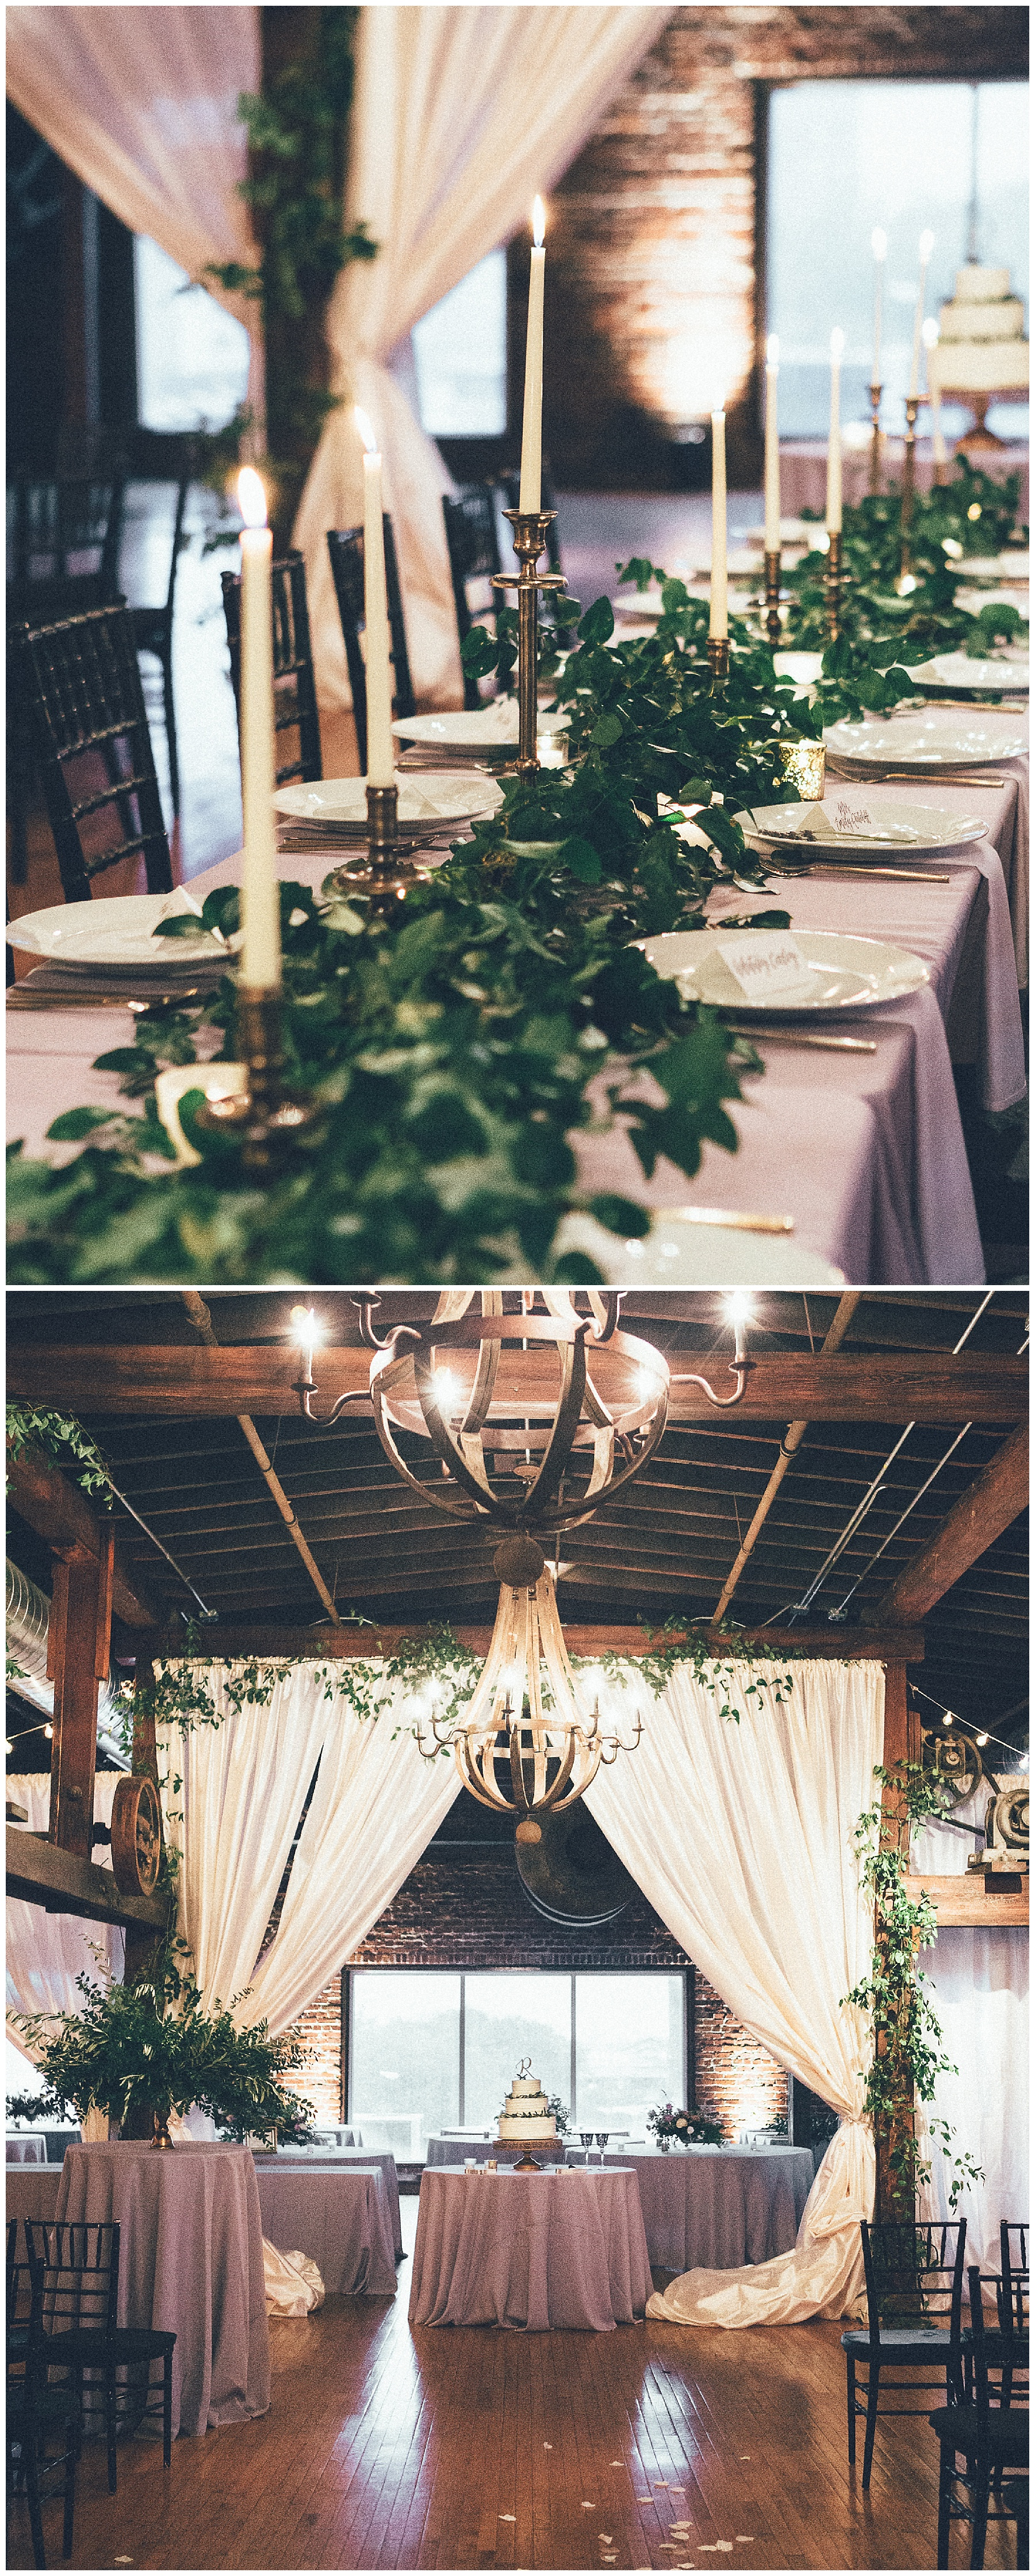 2018-01-23_0012 Emily & Marcus: A Cozy Nashville Wedding Blog Invision Events Weddings    invision_events, birmingham_al, auburn_al, alabama, atlanta_ga, atl, georgia, wedding_planner, wedding_designer, weddings, photography, wedding_planning